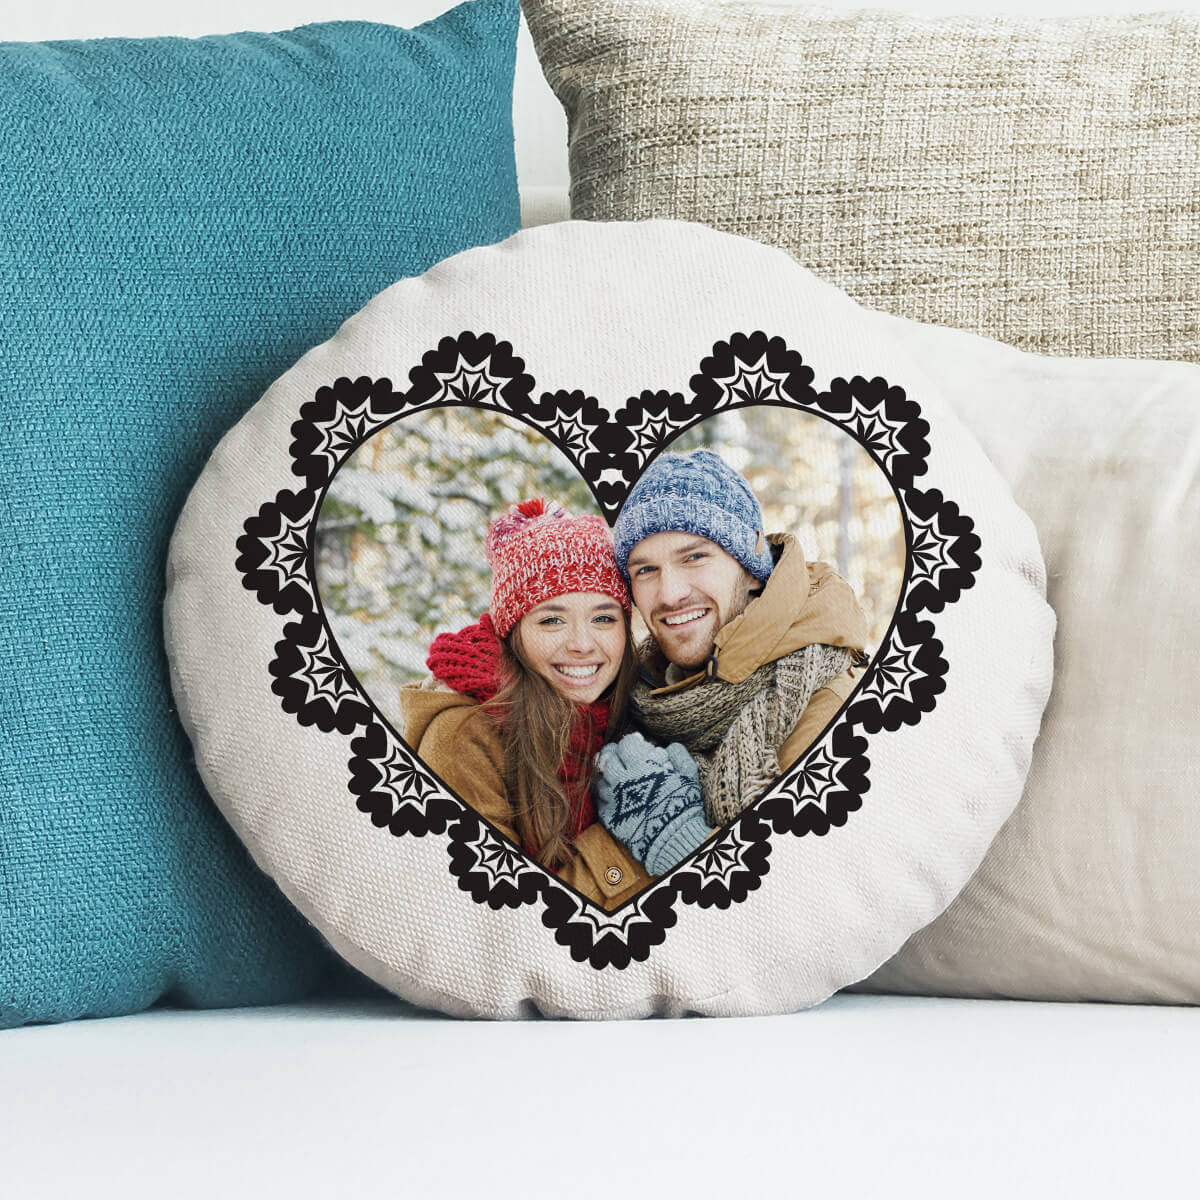 personalised Ornate Heart Round Photo Cushion 18""